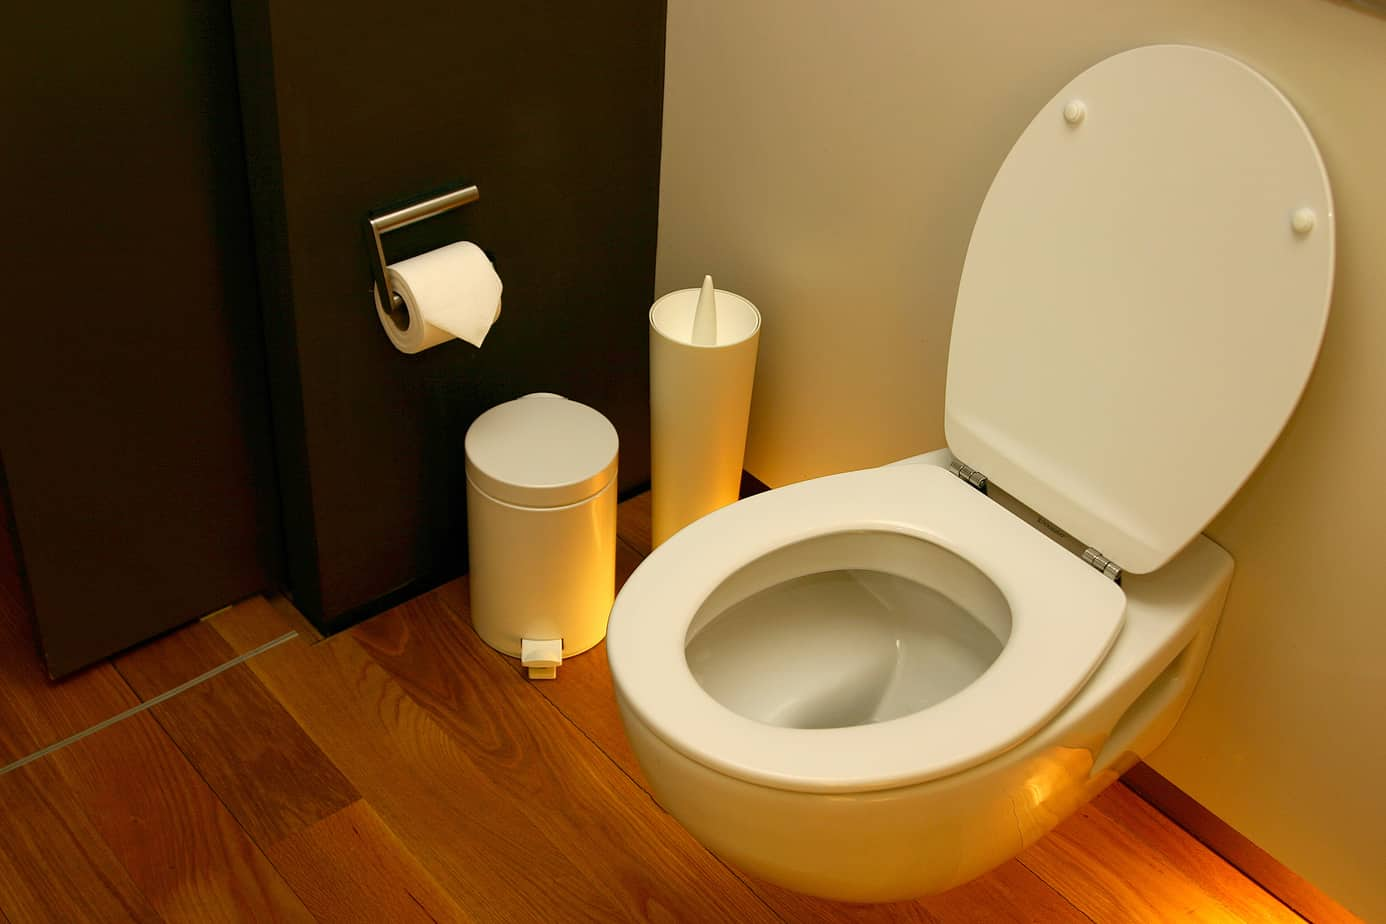 types of toilet seats. Black Bedroom Furniture Sets. Home Design Ideas